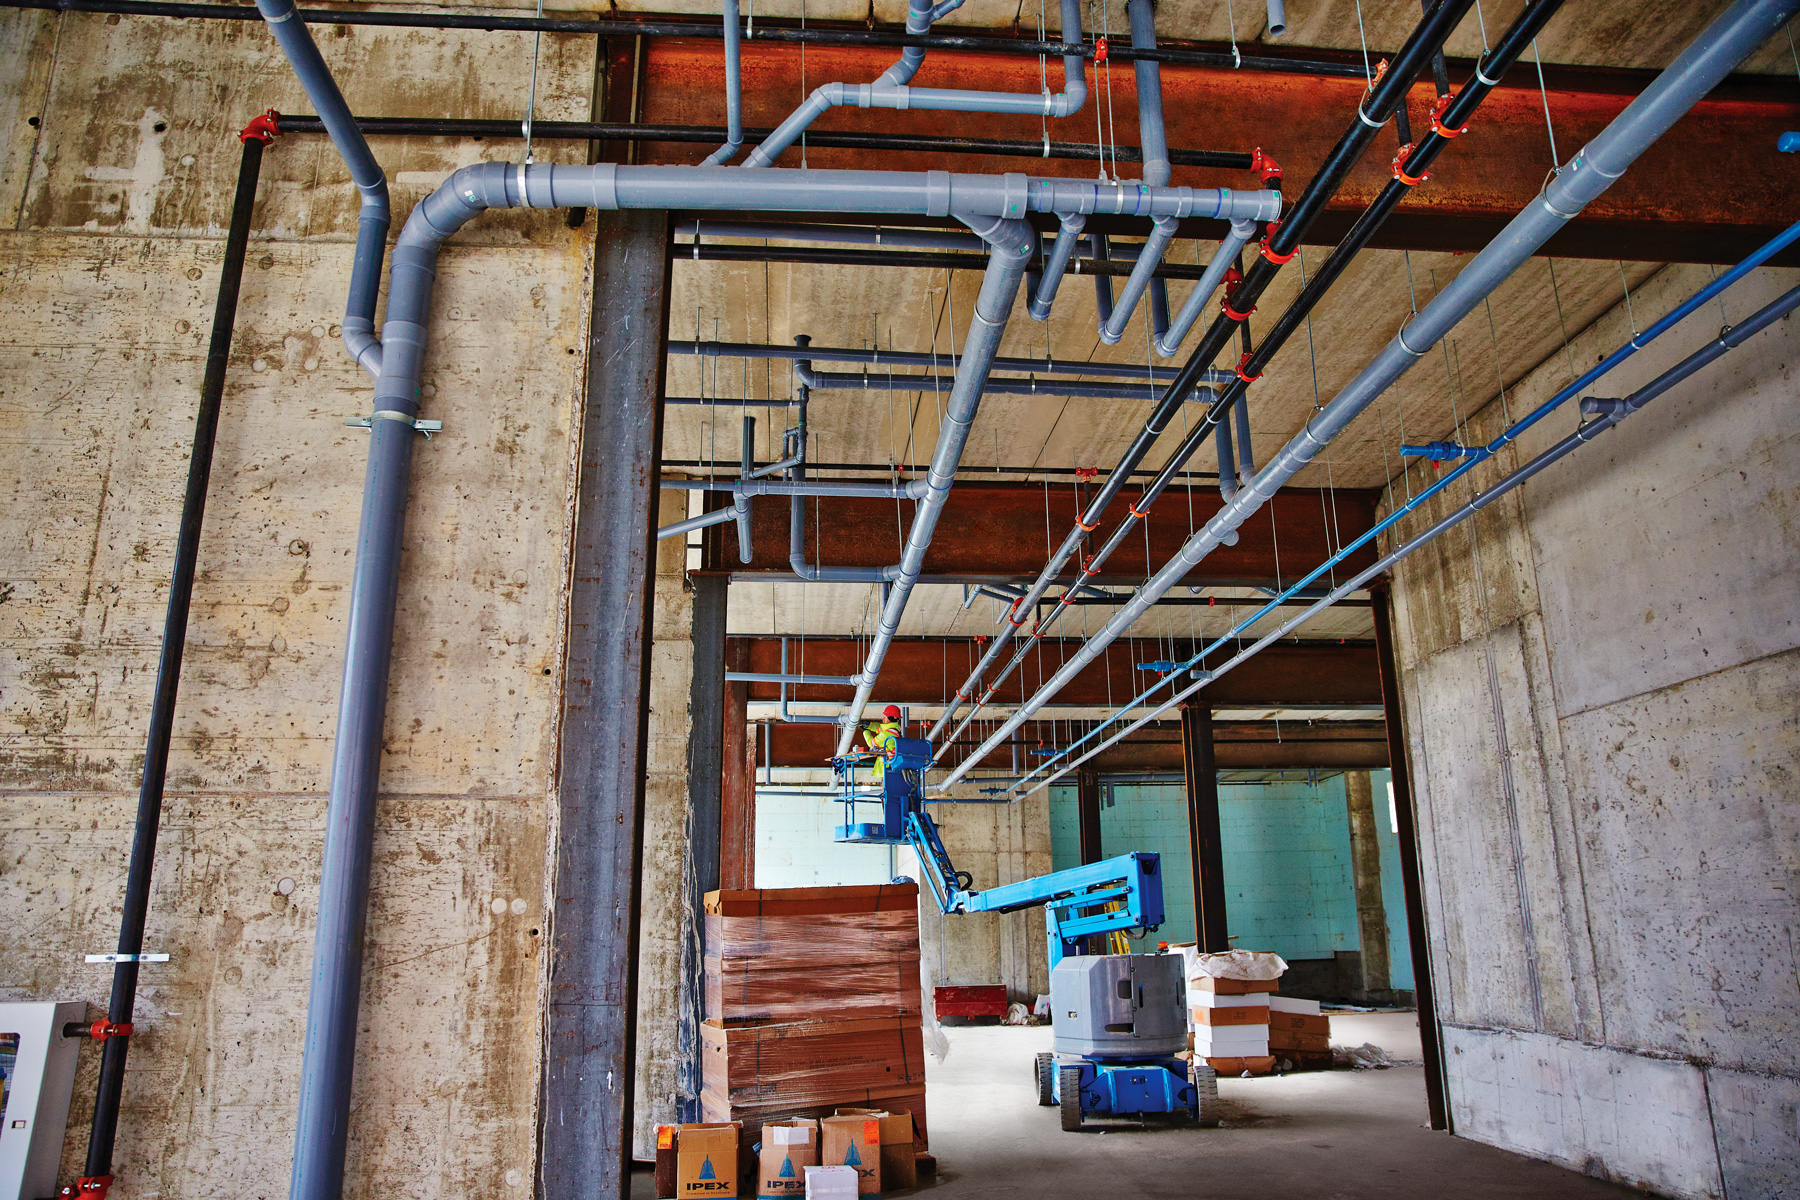 thermoplastic piping systems